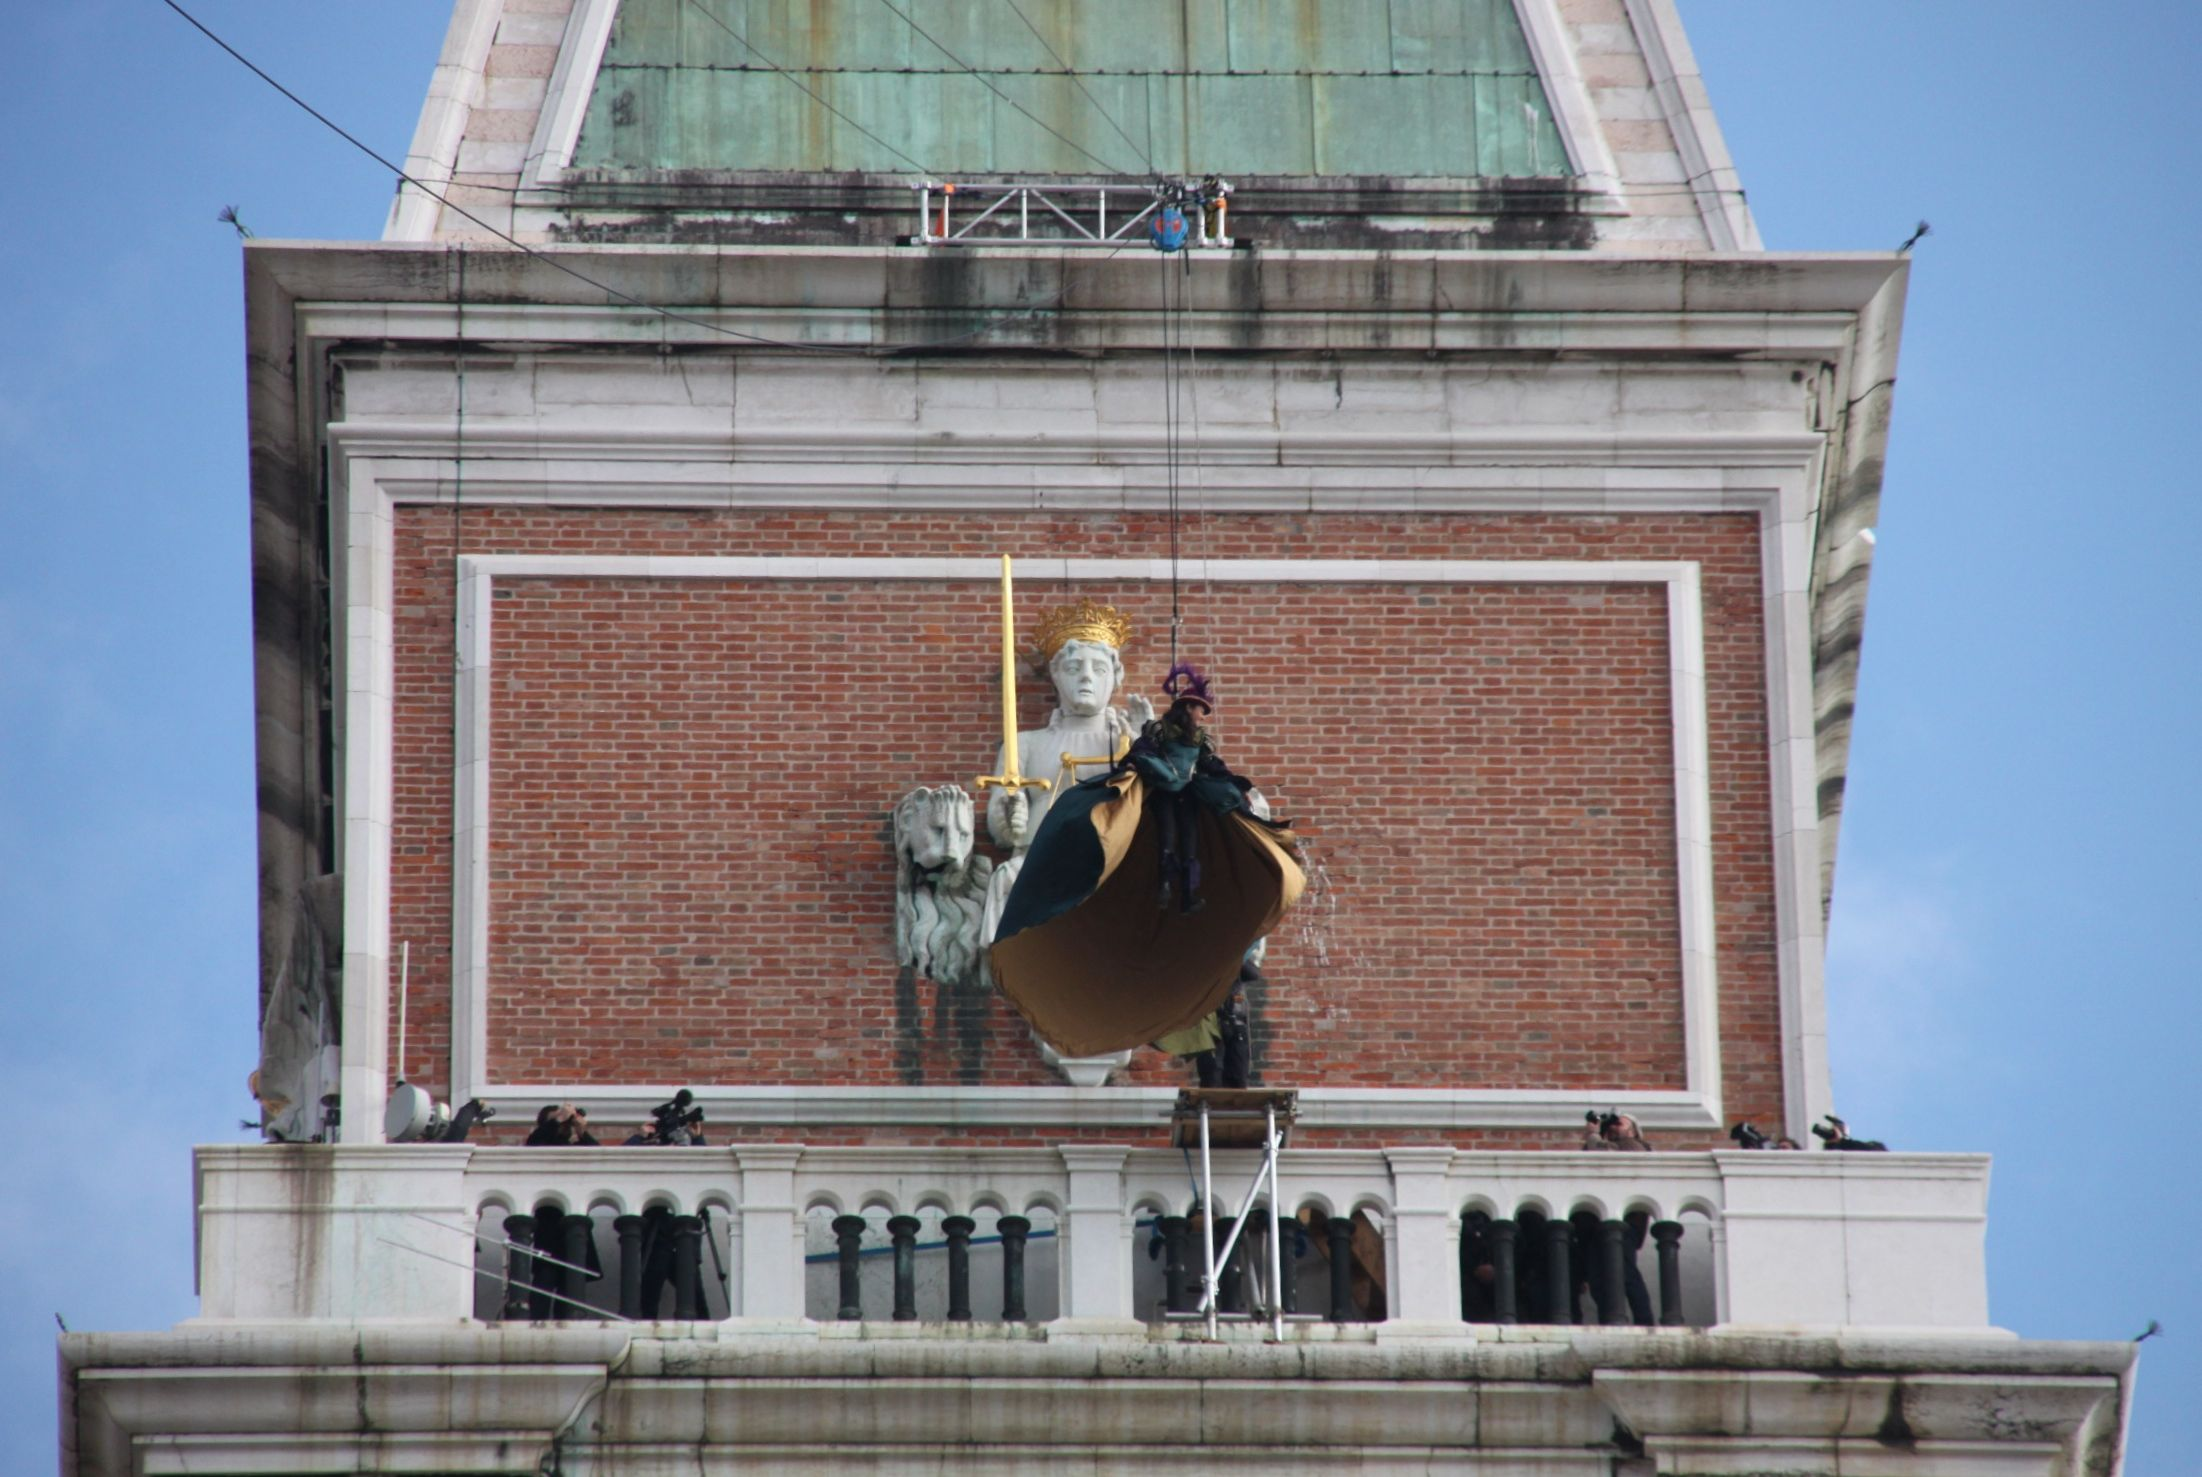 Venice's carnival eagle launches out above the parapet of St Mark's campanile